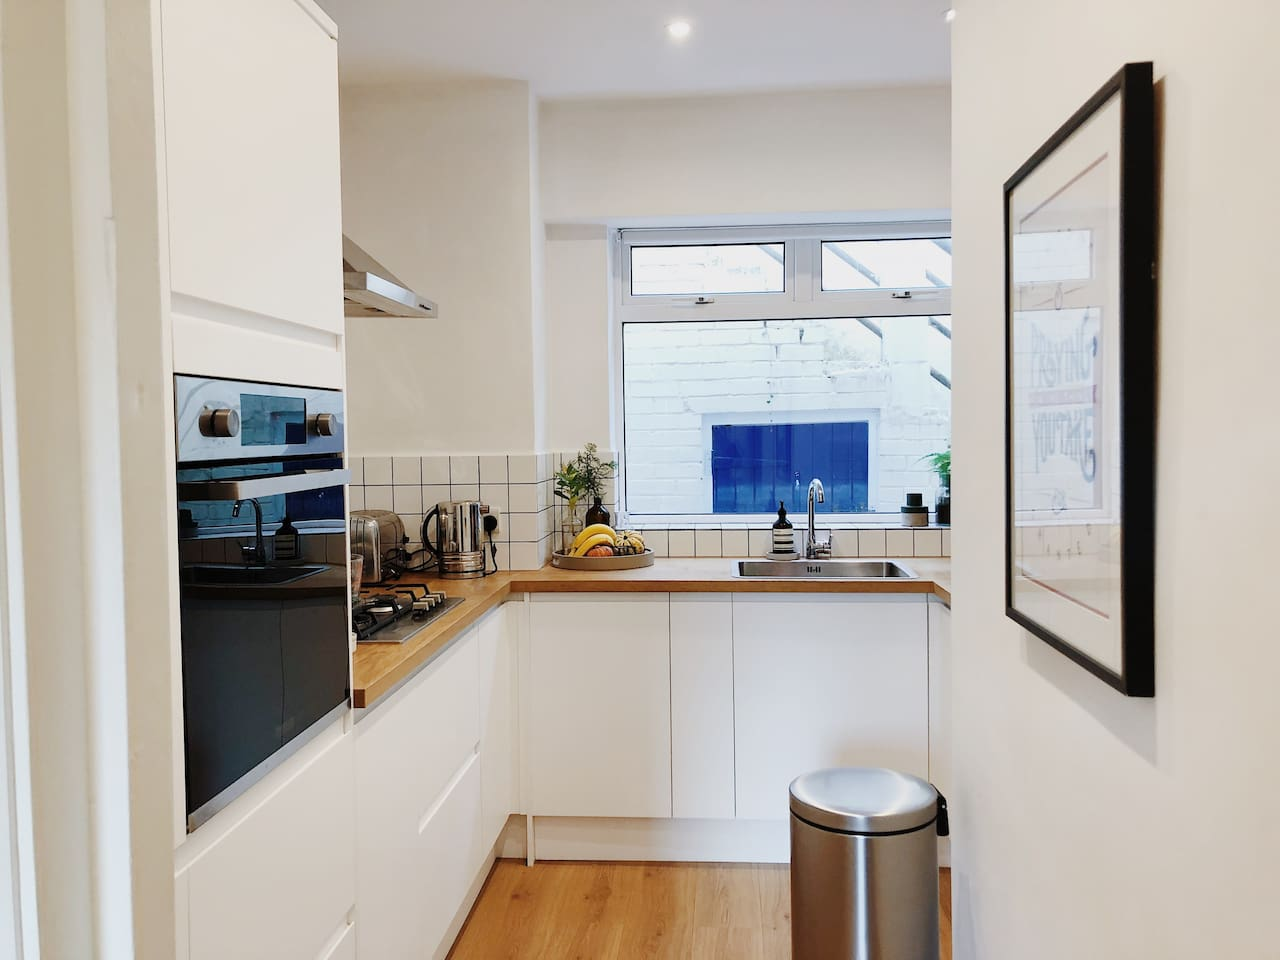 Luxury 1 Bedroom Apartment - perfect for couples